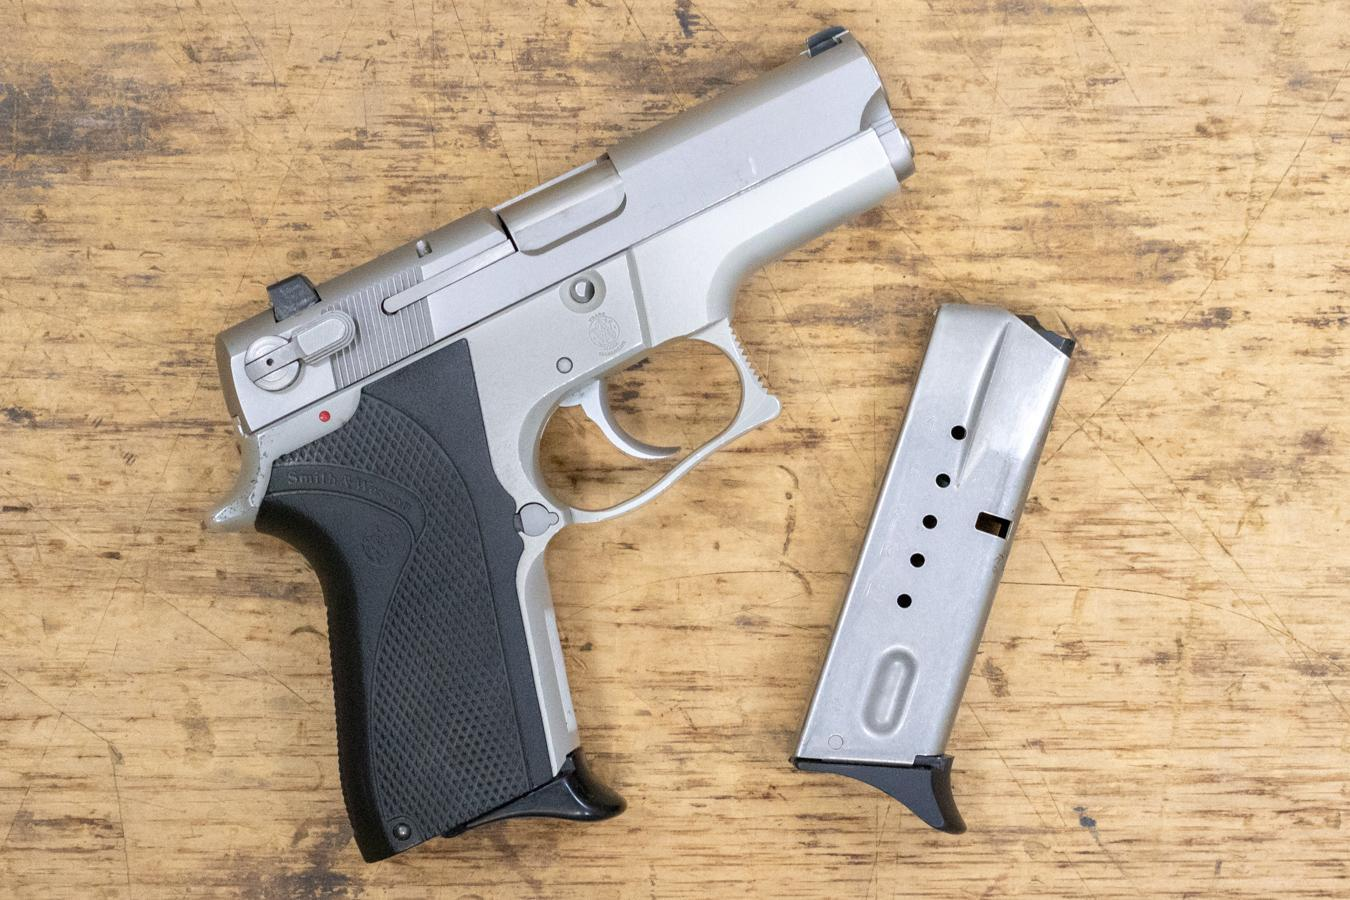 Smith & Wesson Model 6906 chambered in 9 mm